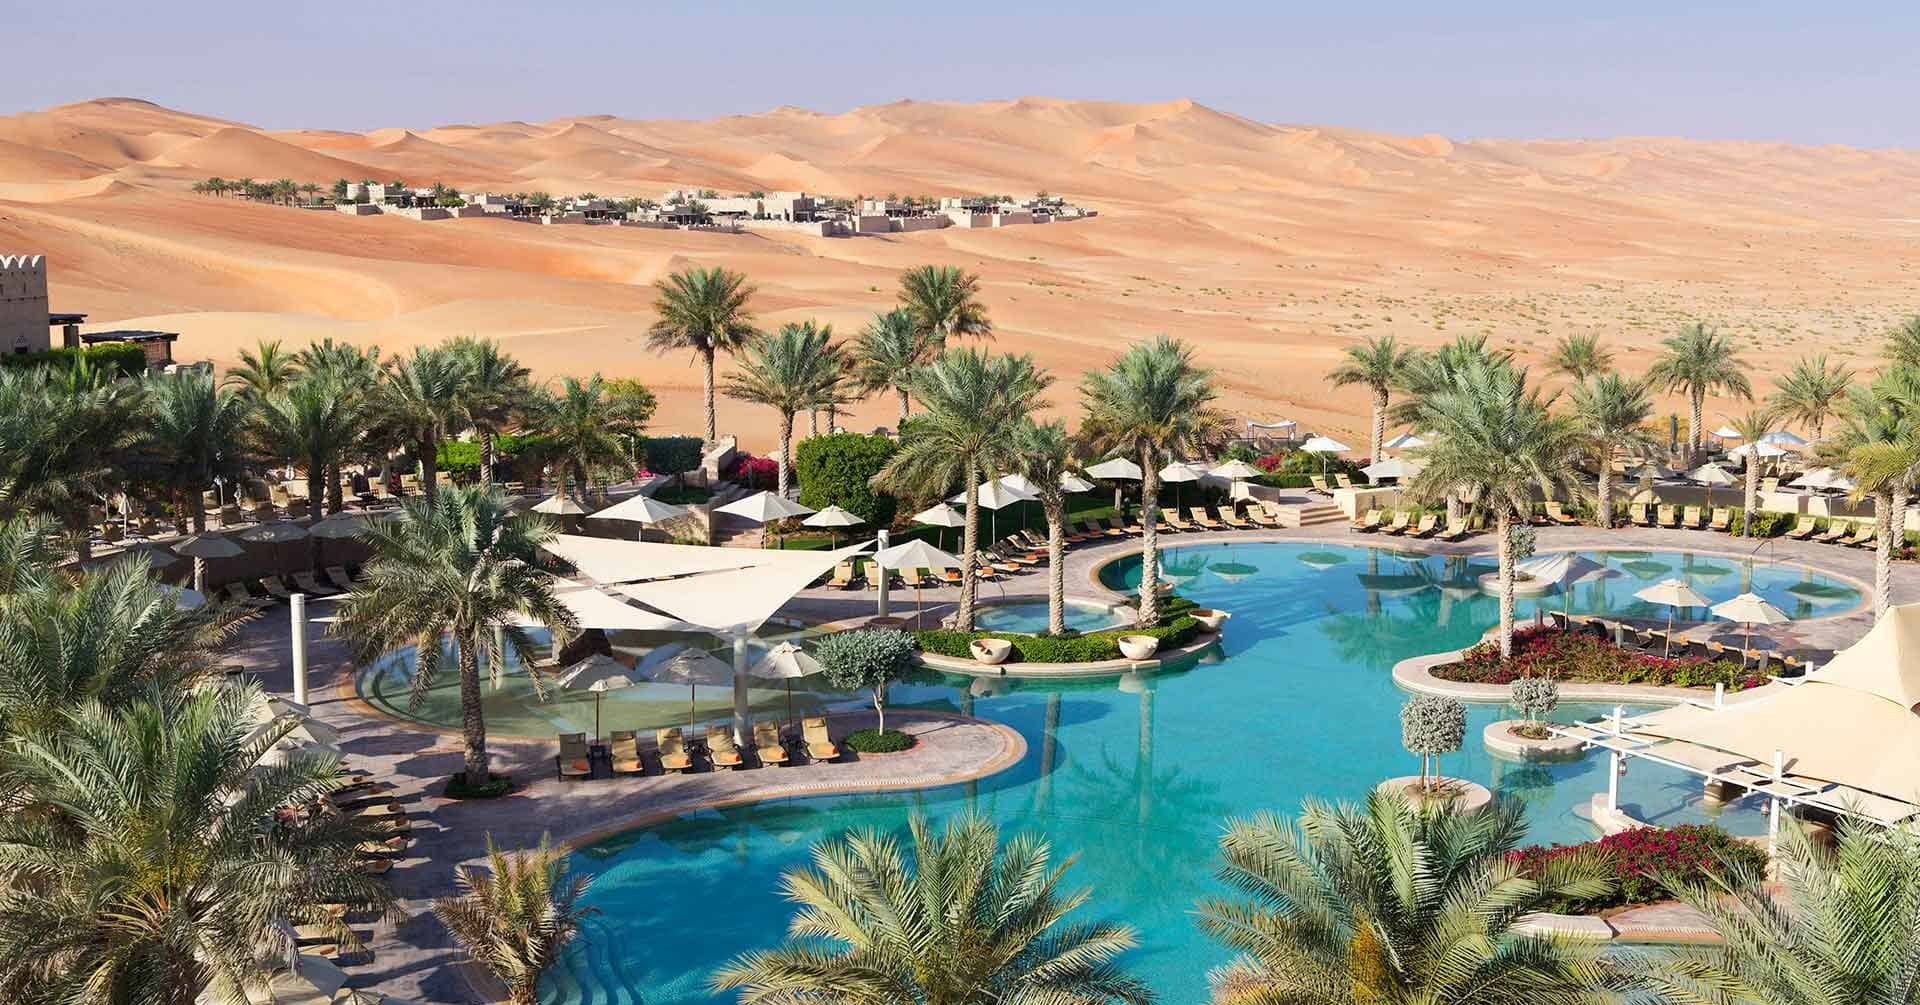 hotel-resorts-uae-staycations-dubai-hotels-in-uae-Croppeddddoddok-qasr_al_sarab_by_anantara_free_form_pool_1920x1037-Cropped